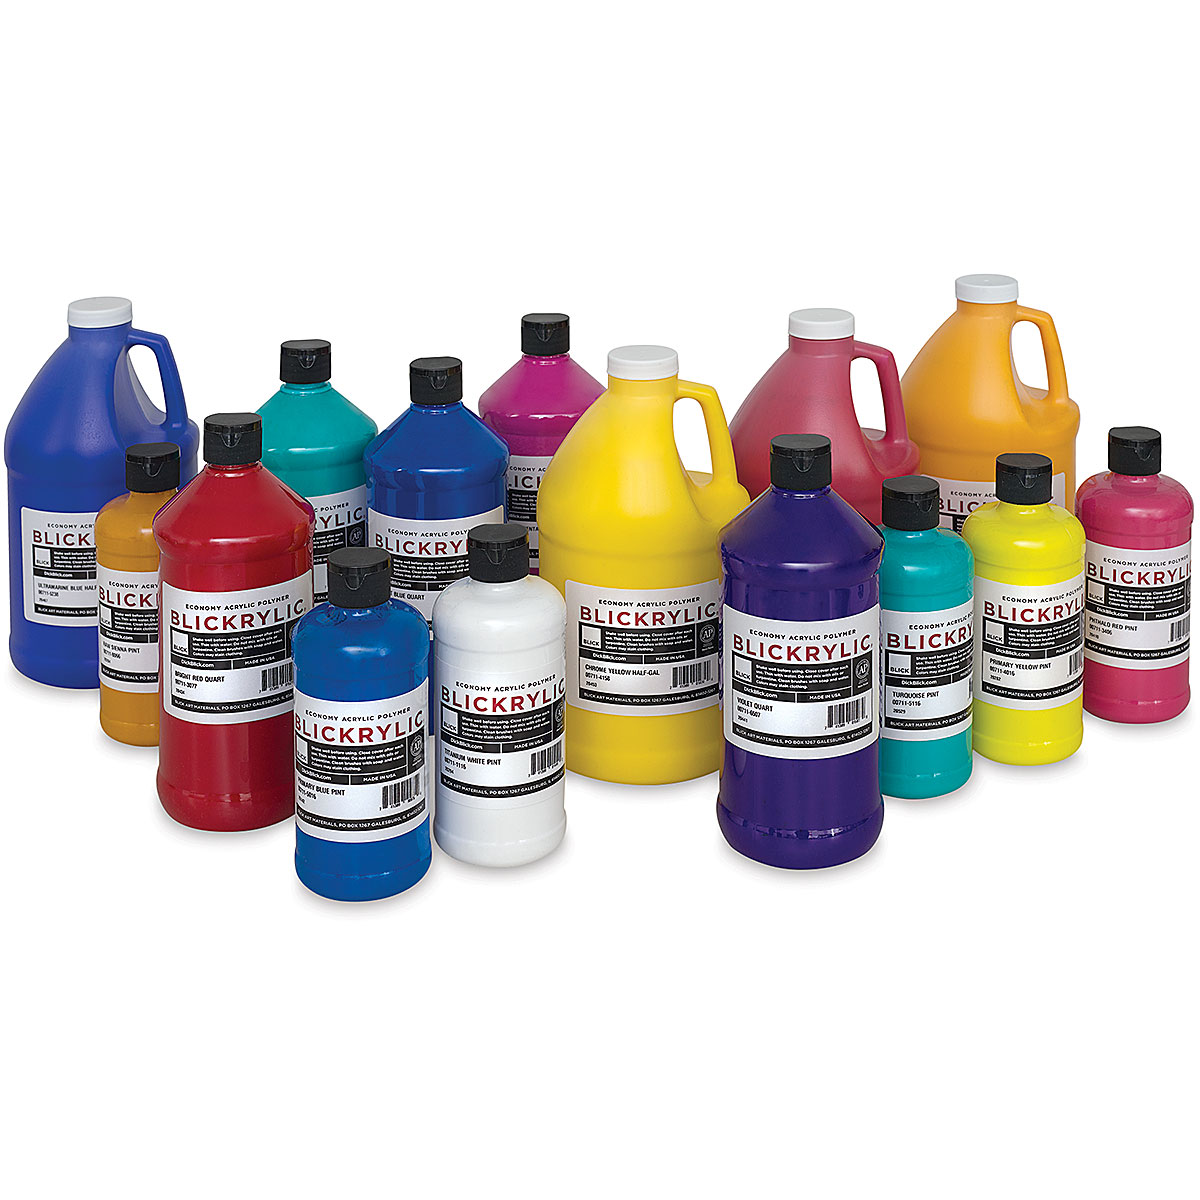 Acrylic Paint Sets Blick Art Materials